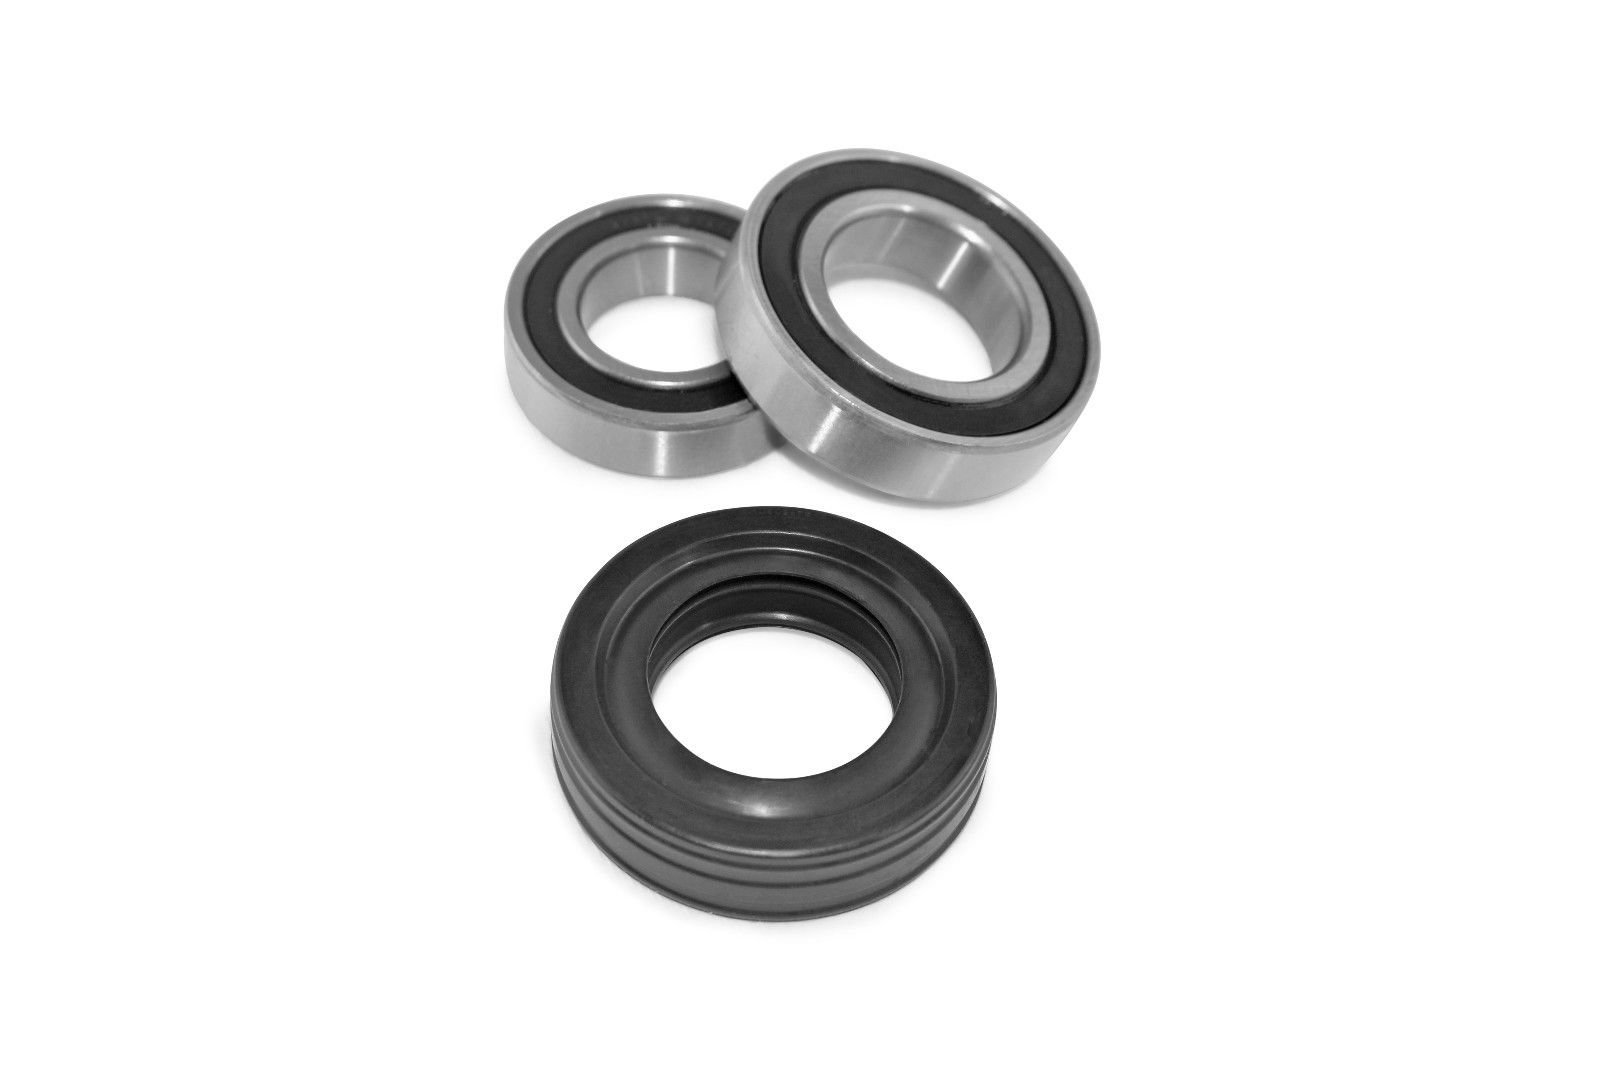 New Bearings Kit & Tool Fits Whirlpool Cabrio W10435302 & W10447783 by Noa Store (Image #5)